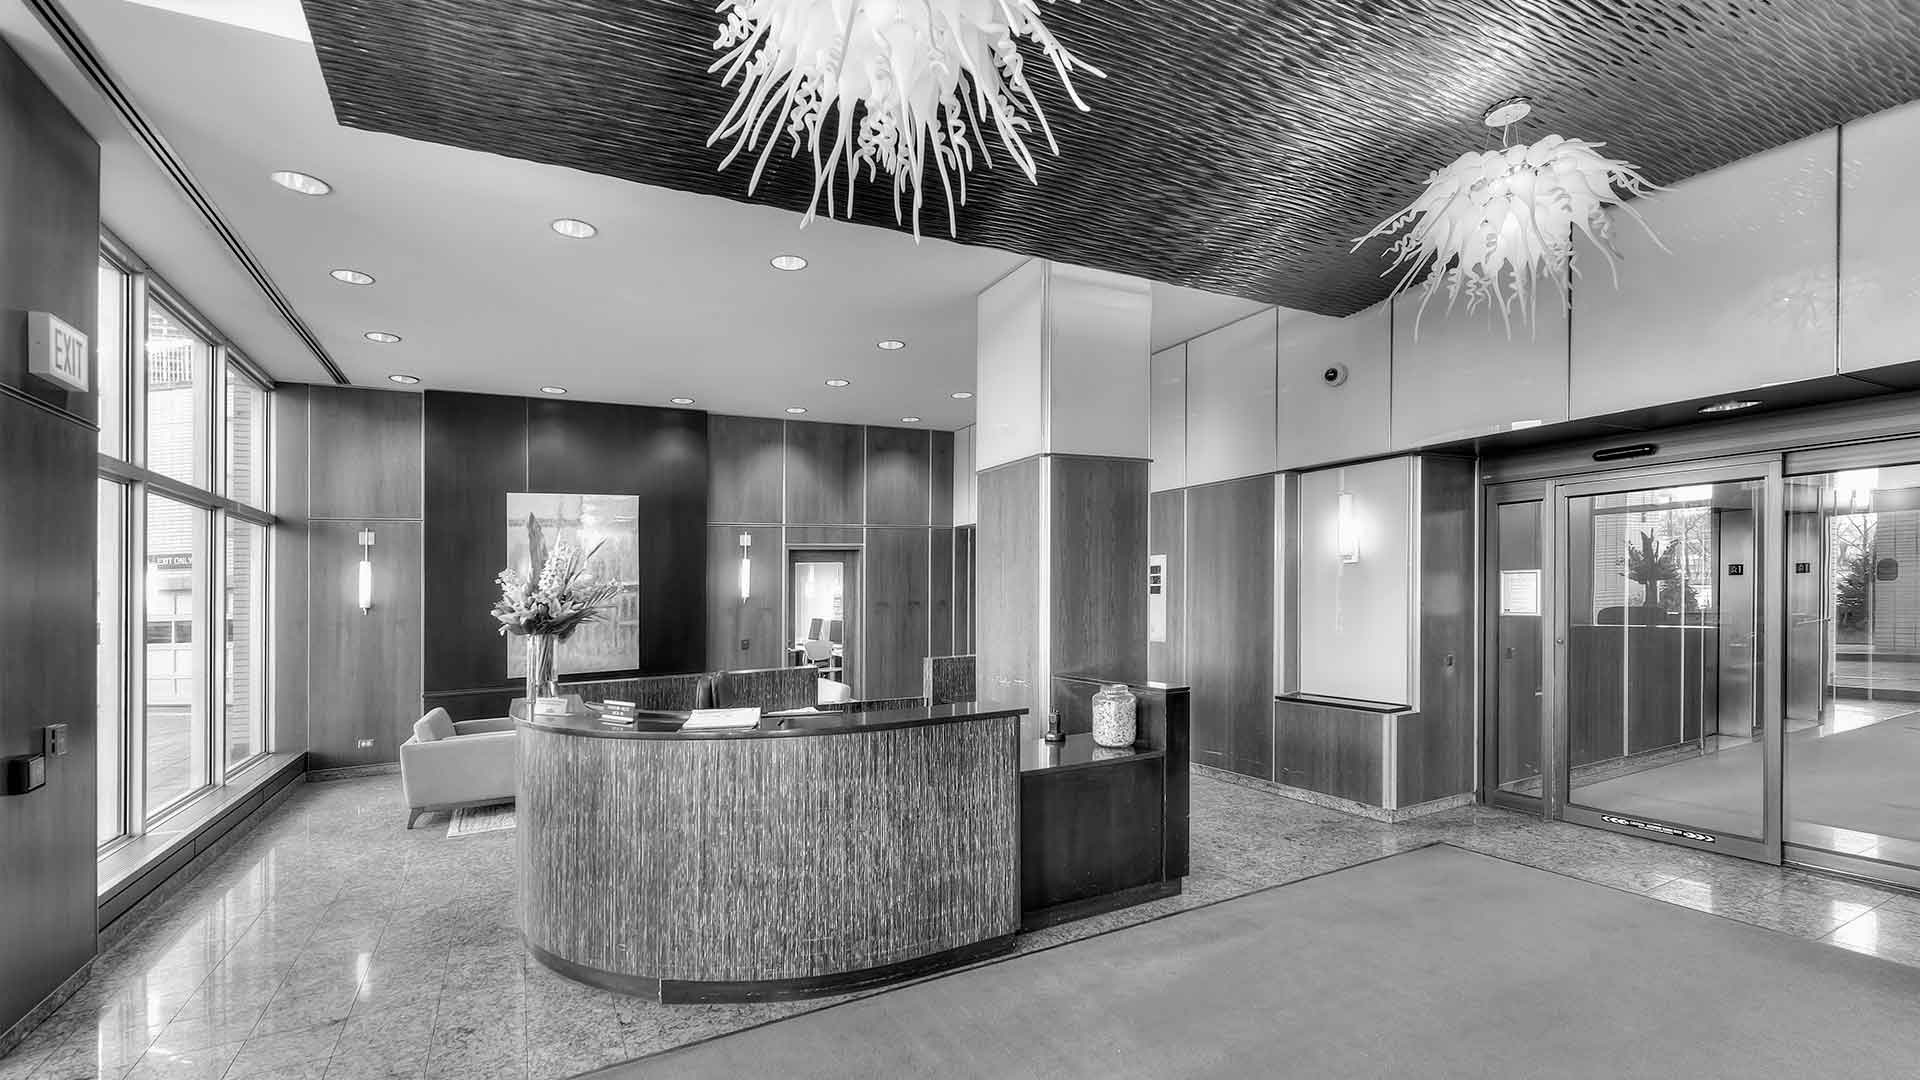 The lobby at Eleven Thirty. The front desk is in the center and a guest waiting area is behind it. The doors to the elevator lobby are seen on the right.